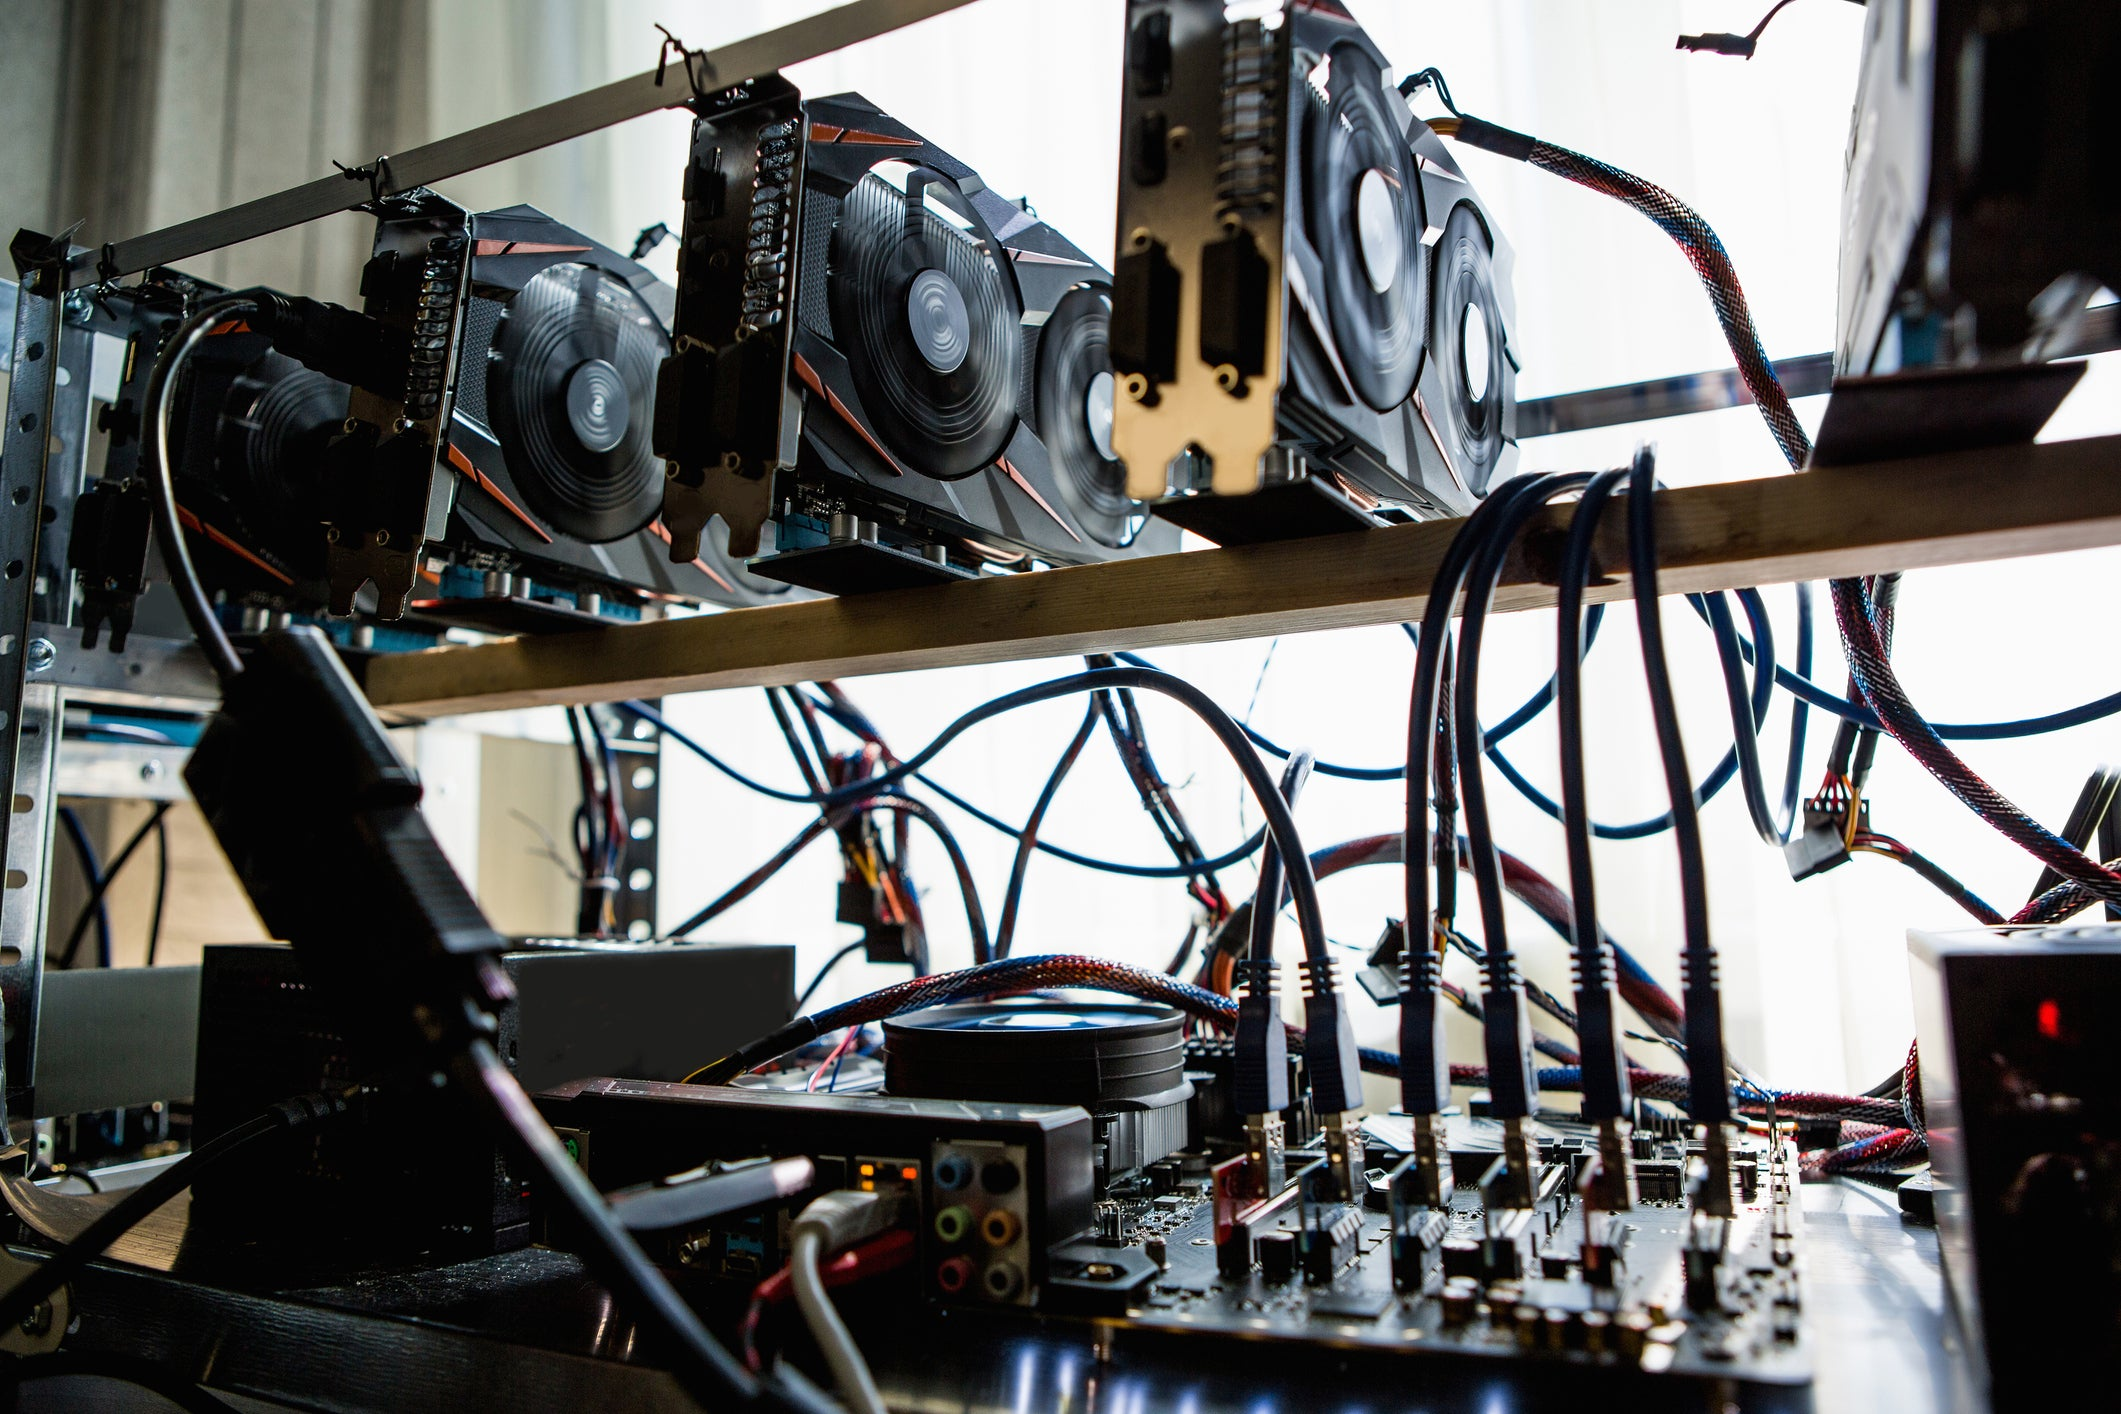 Cardross mining bitcoins wixlib binary options